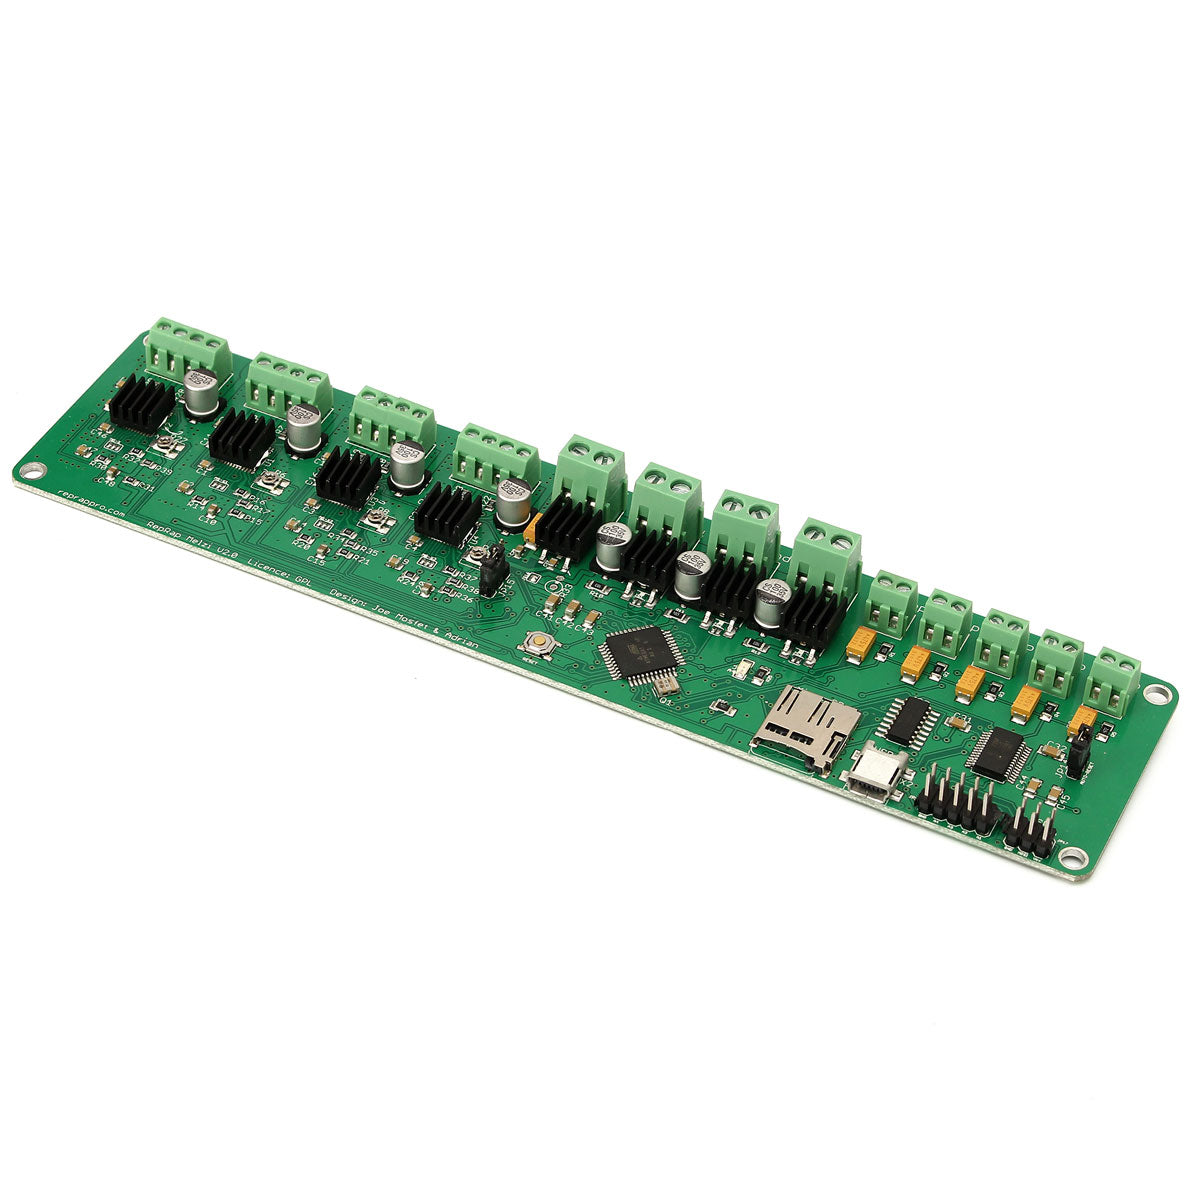 1284P Reprap Mainboard Circuit Board 3D Printer Controller